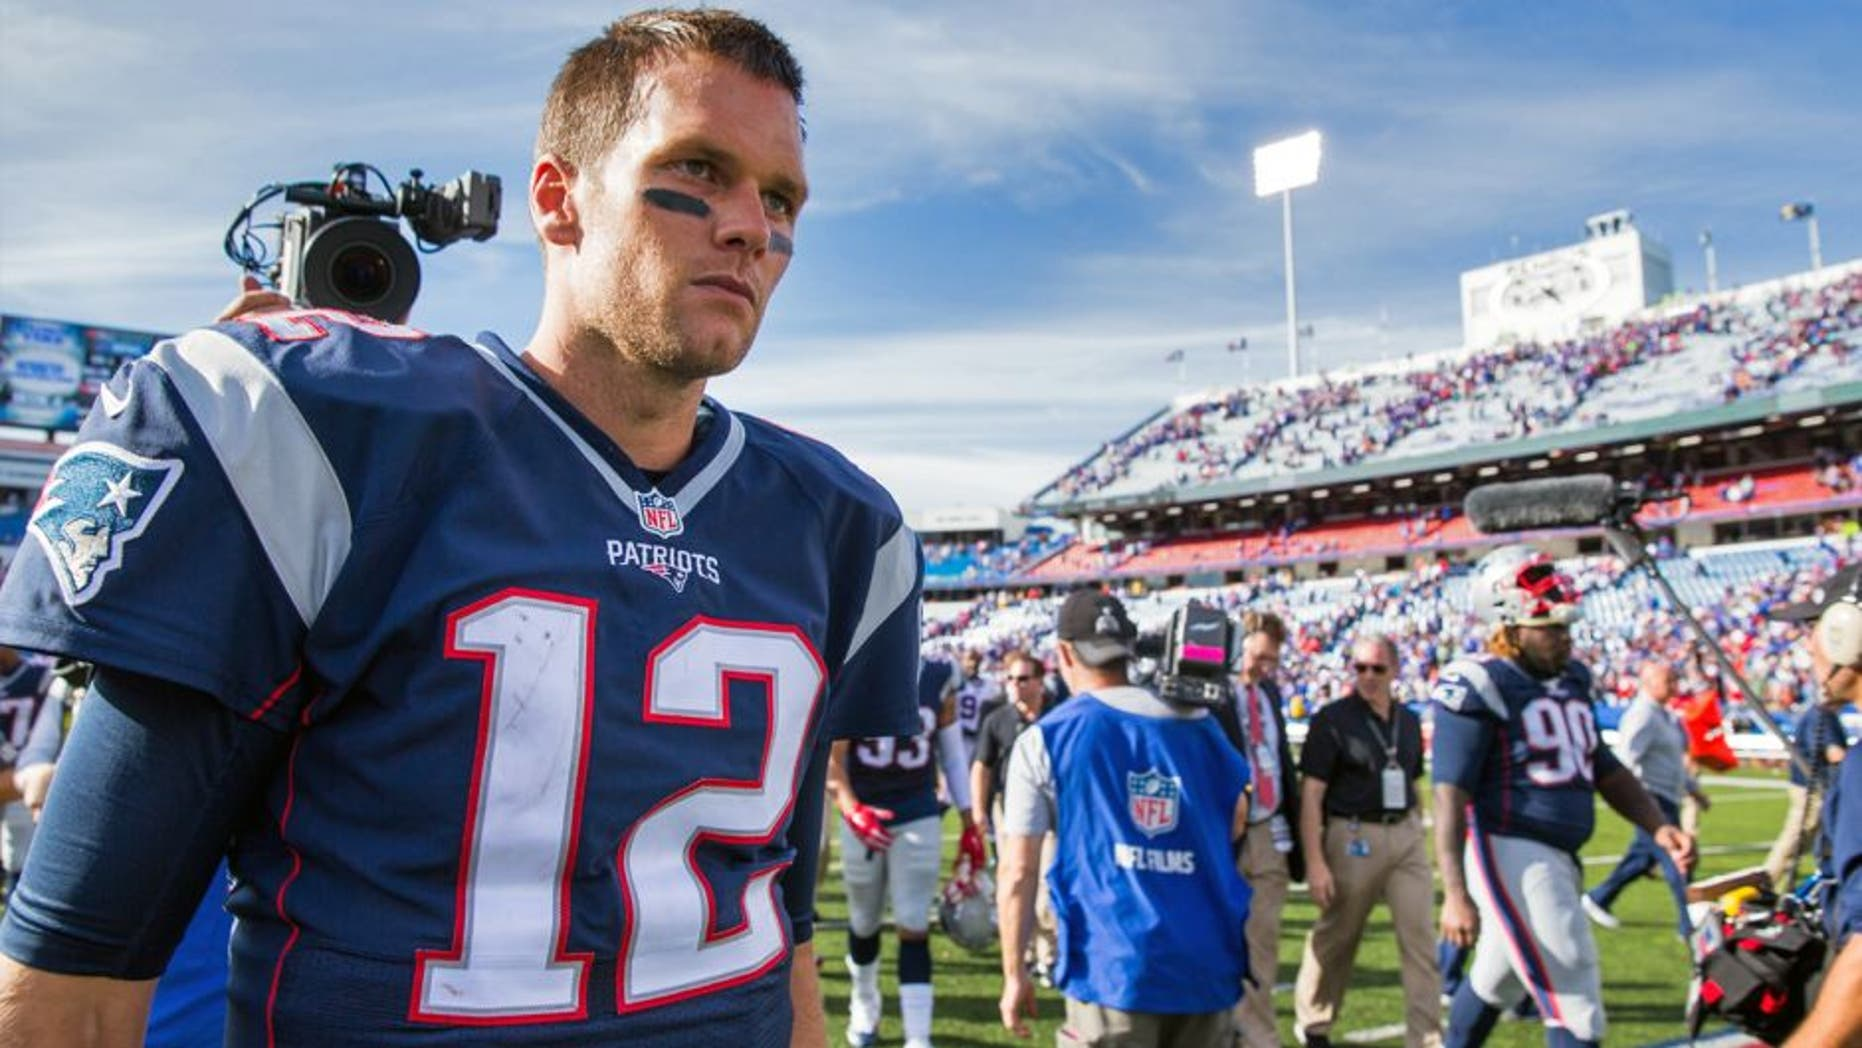 ORCHARD PARK, NY - SEPTEMBER 20: Tom Brady #12 of the New England Patriots walks off the field after the win against the Buffalo Bills on September 20, 2015 at Ralph Wilson Stadium in Orchard Park, New York. New England defeats Buffalo 40-32. (Photo by Brett Carlsen/Getty Images)